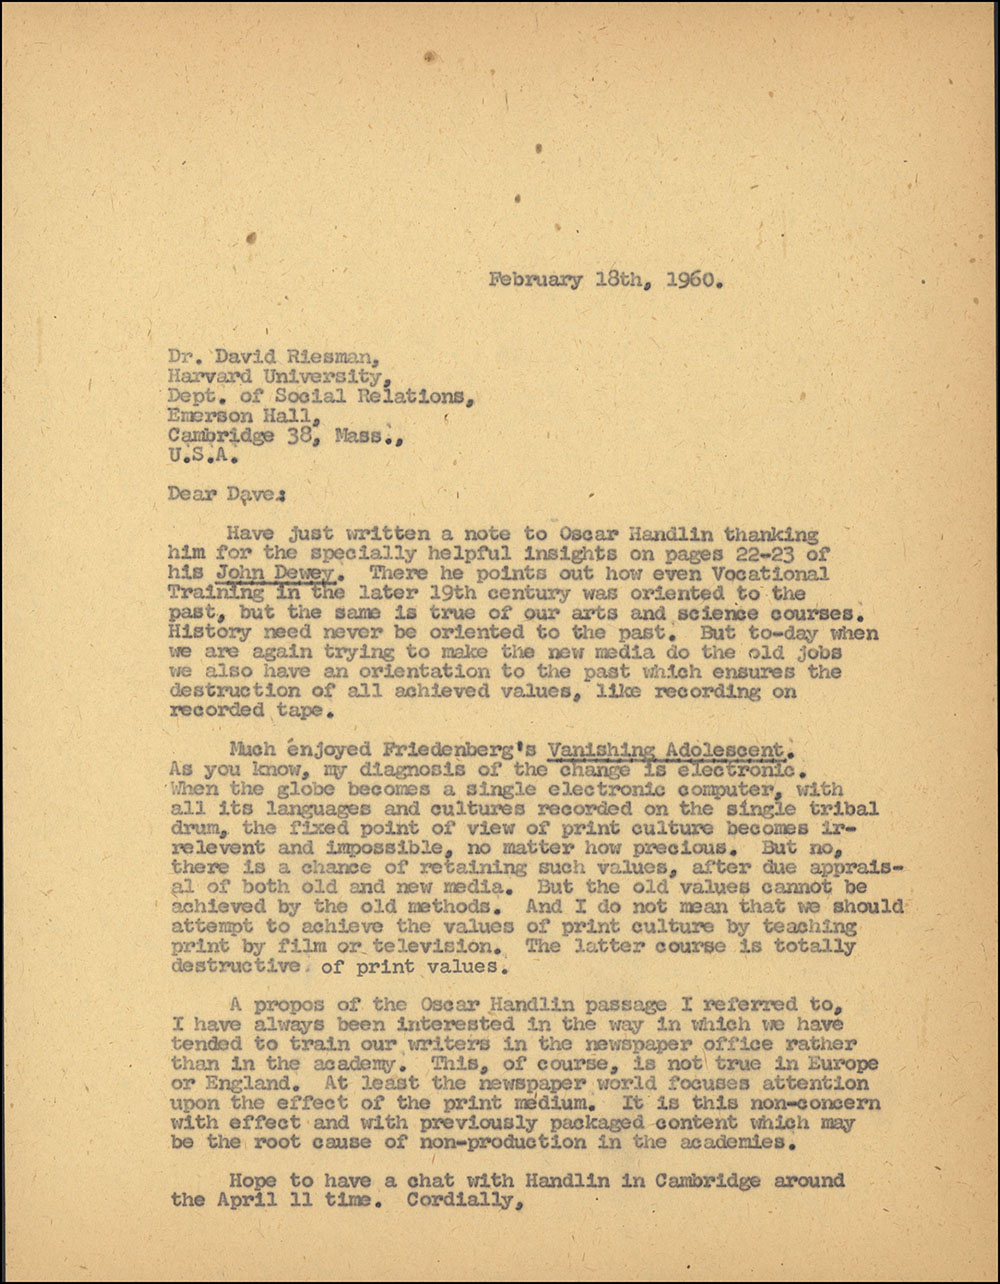 Letter dated February 18, 1960 to David Riesman